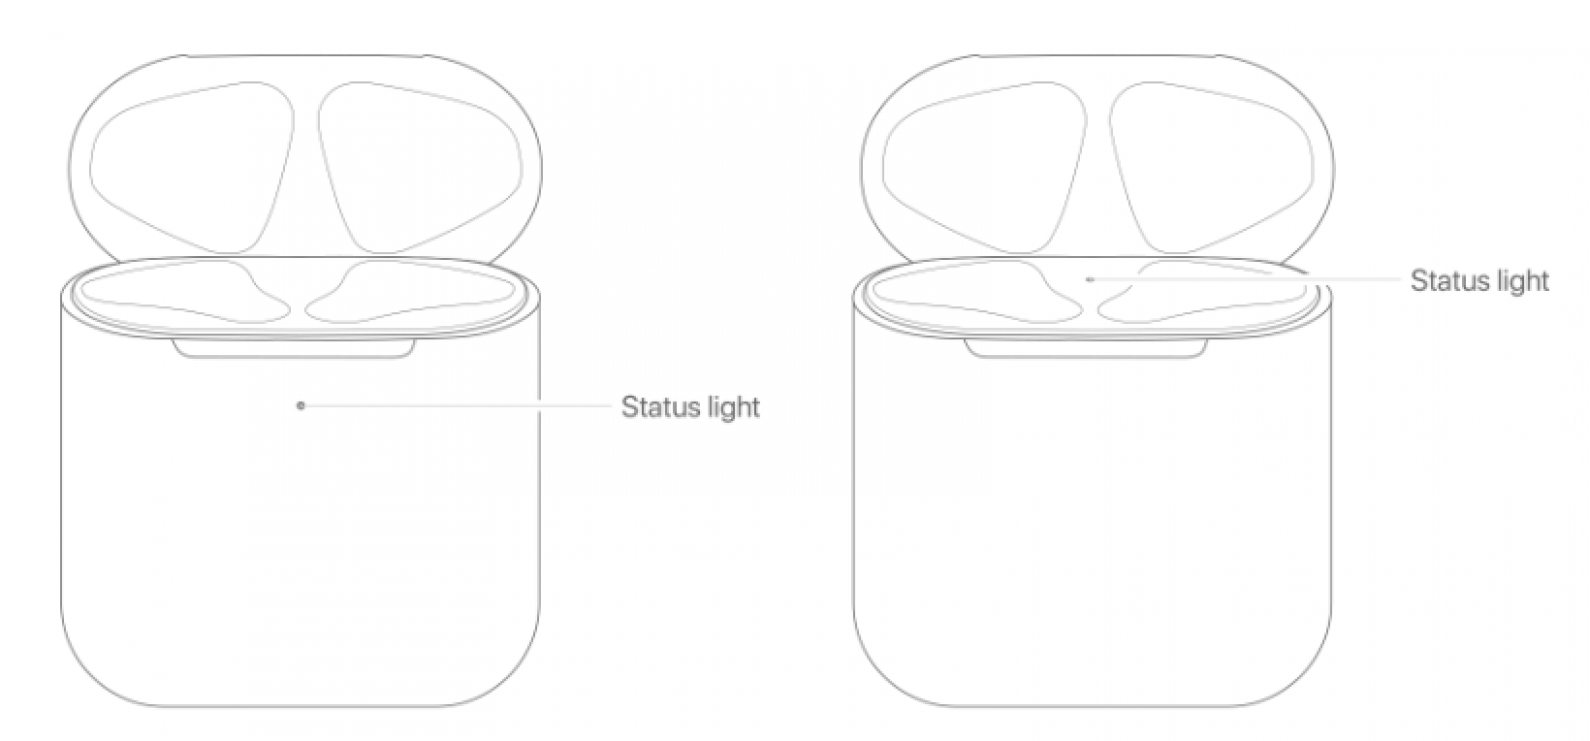 AirPods charging case status light